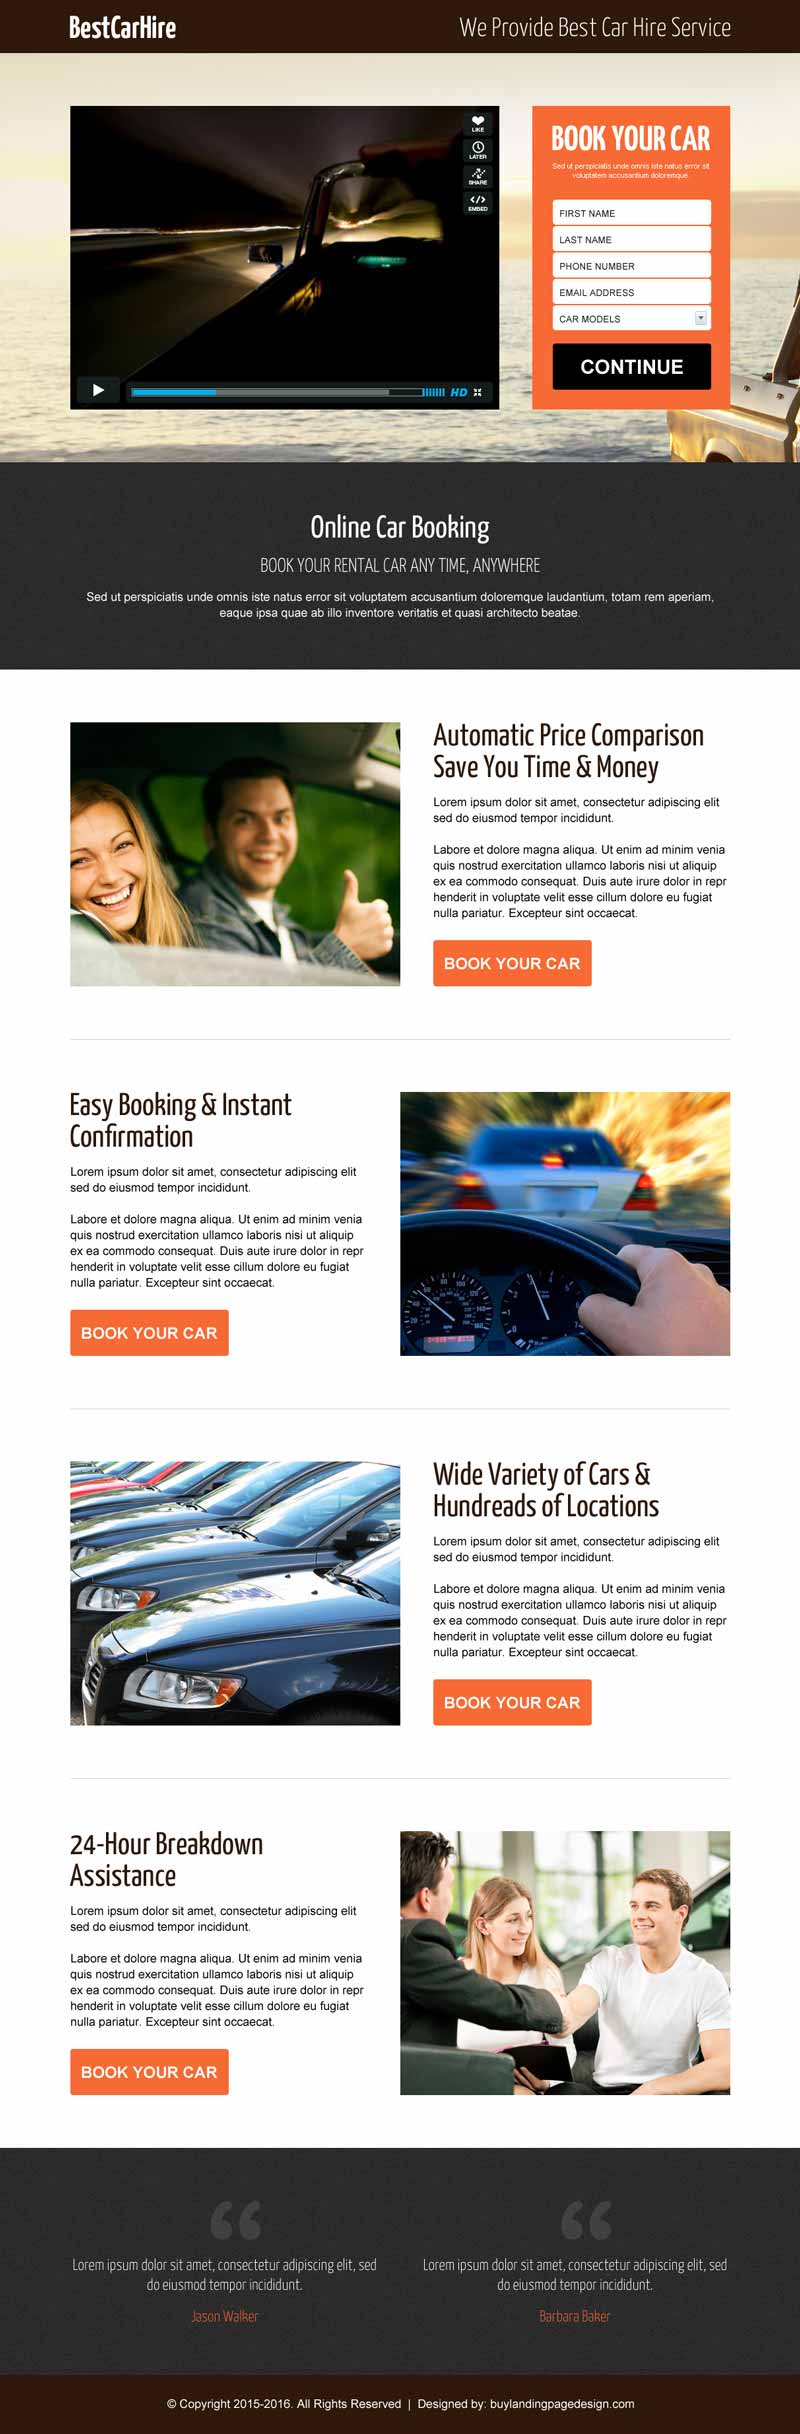 car-hire-service-lead-generation-video-responsive-landing-page-005